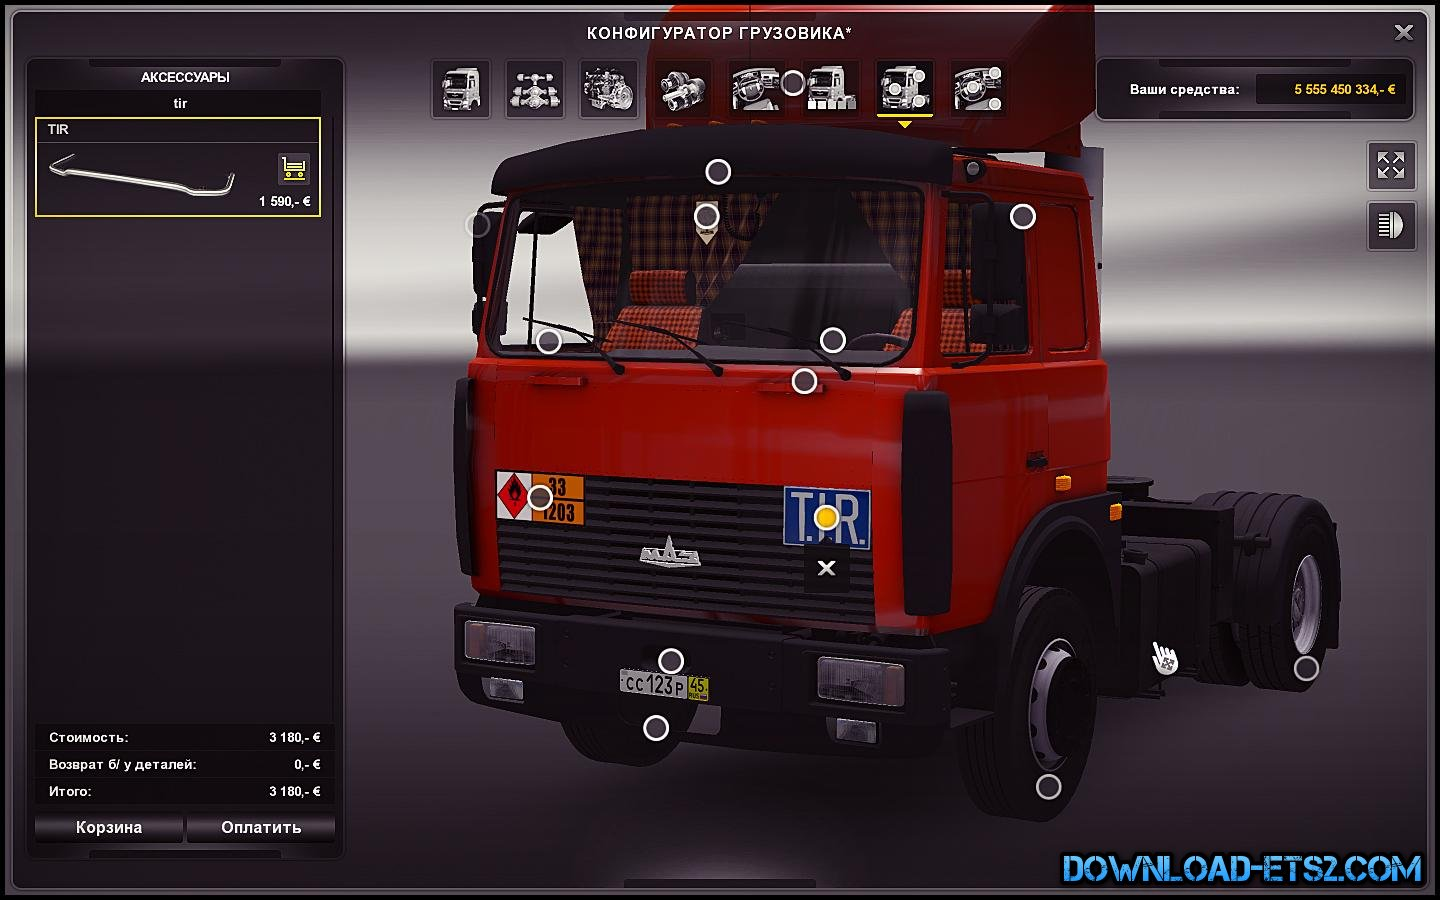 MAZ 5432-6422 v5.0.1 for ETS2